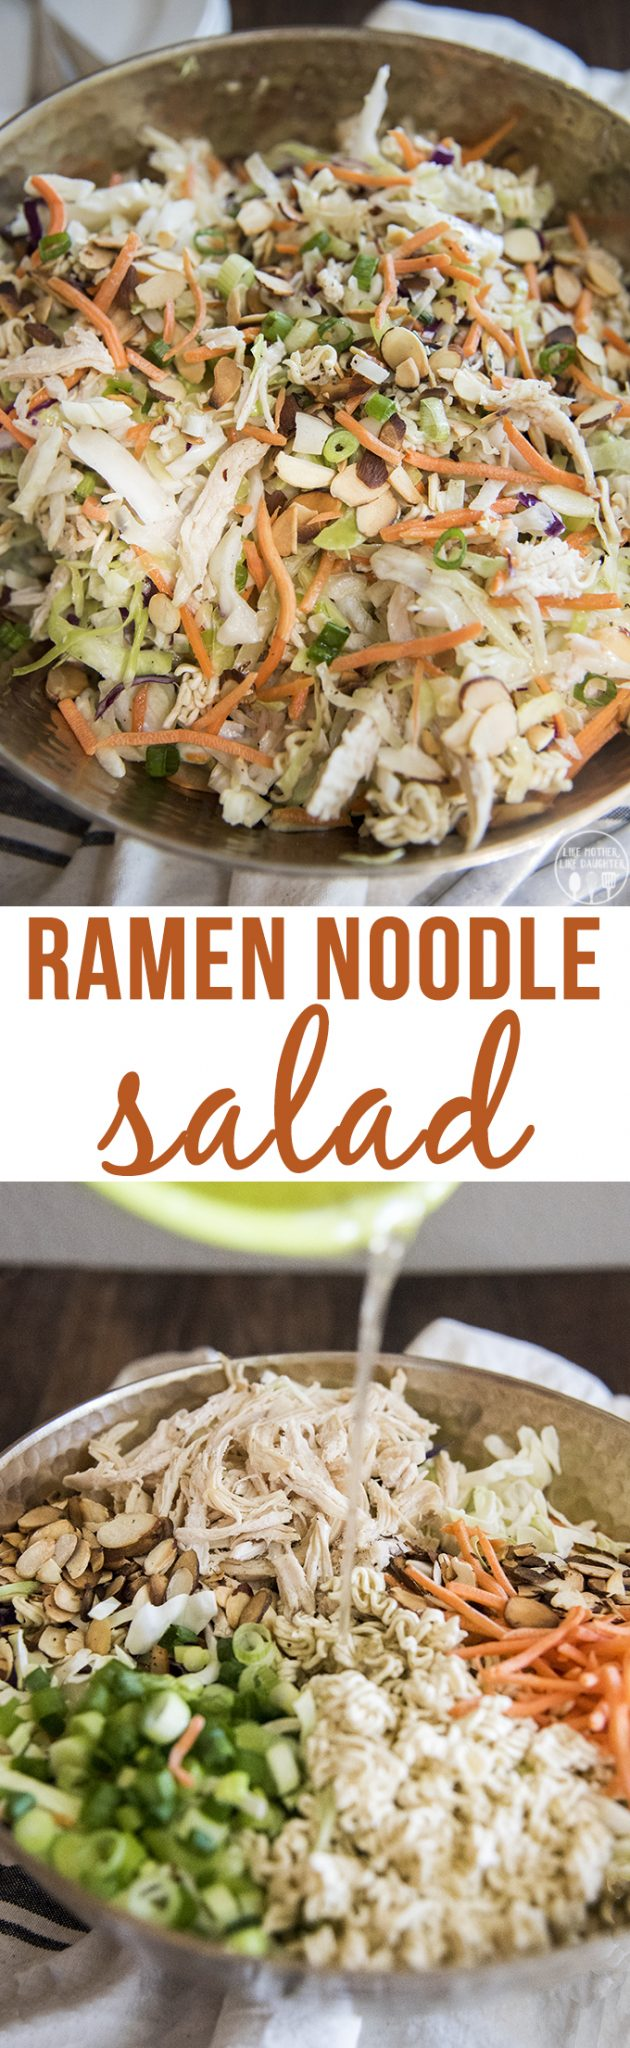 RRamen noodle salad isquick and easy to make. The crunchy salad is covered in a flavorful dressing and is perfect served at a picnic, potluck, or barbecue!